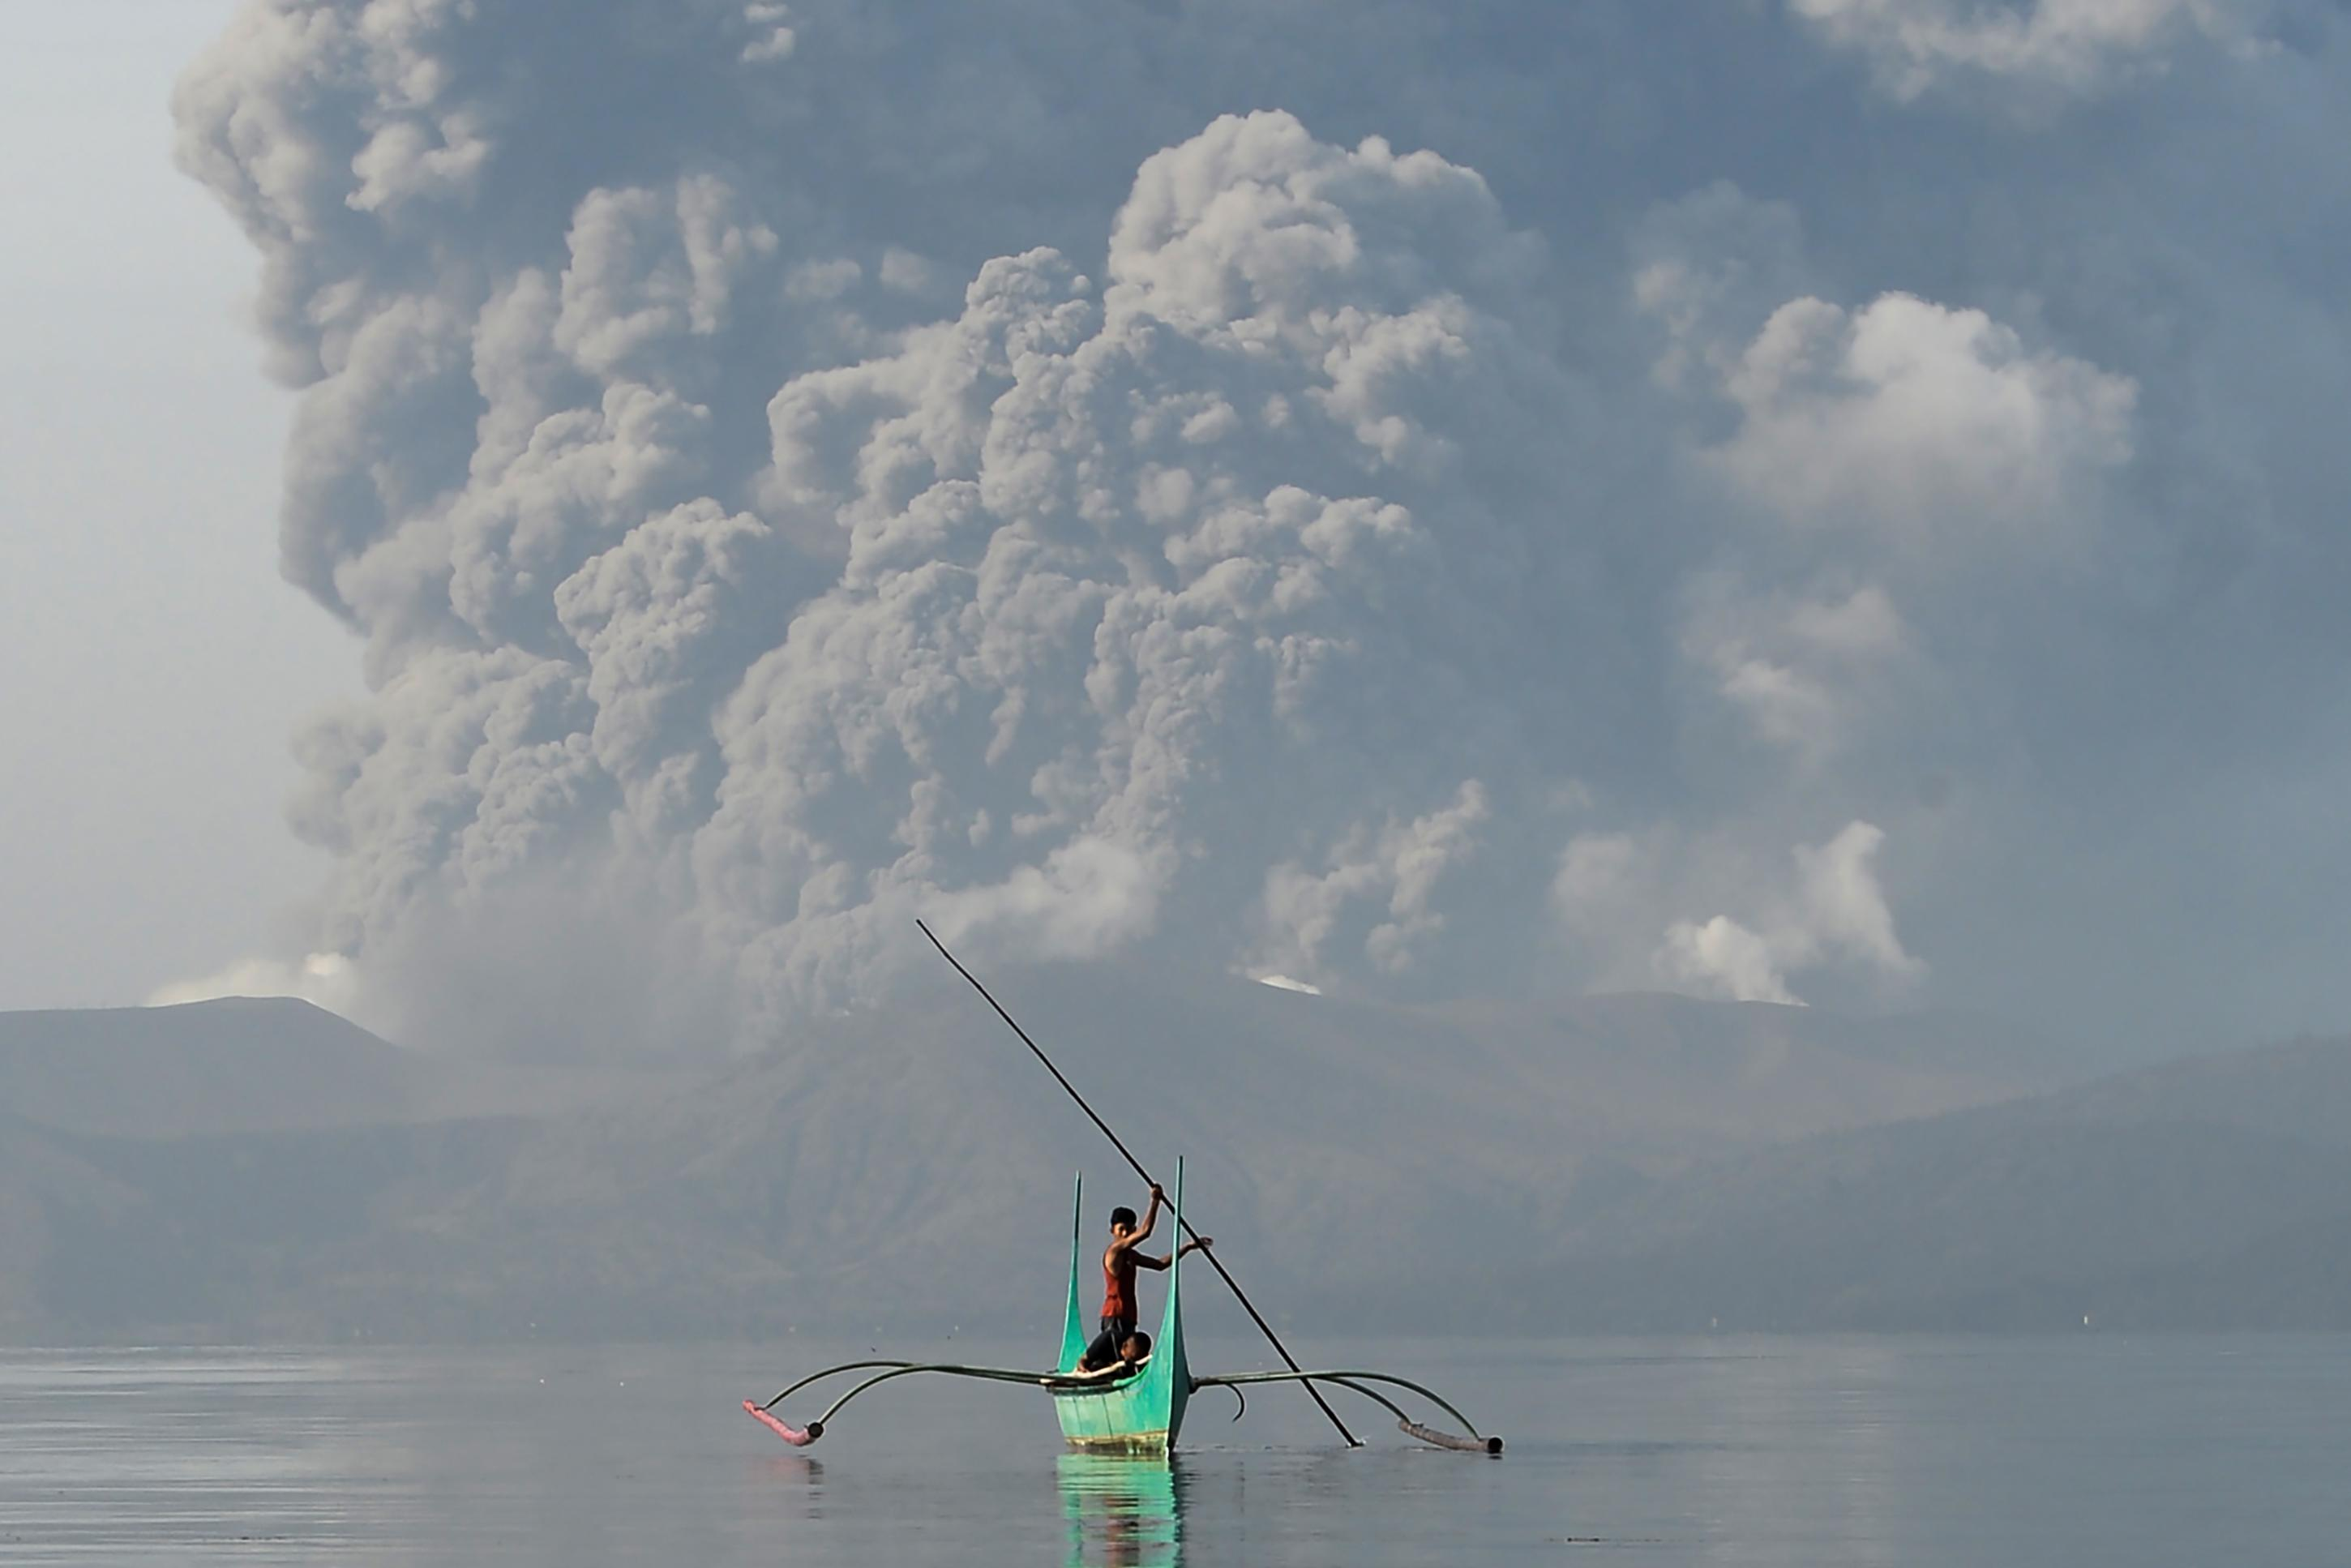 "TOPSHOT - A youth living at the foot of Taal volcano rides an outrigger canoe while the volcano spews ash as seen from Tanauan town in Batangas province, south of Manila, on January 13, 2020. - The Philippines was on alert January 13 for the ""explosive eruption"" of a volcano south of Manila, which officials said could be imminent after a massive column of ash forced a halt to flights at the capital's main airport. (Photo by Ted ALJIBE / AFP) (Photo by TED ALJIBE/AFP via Getty Images)"